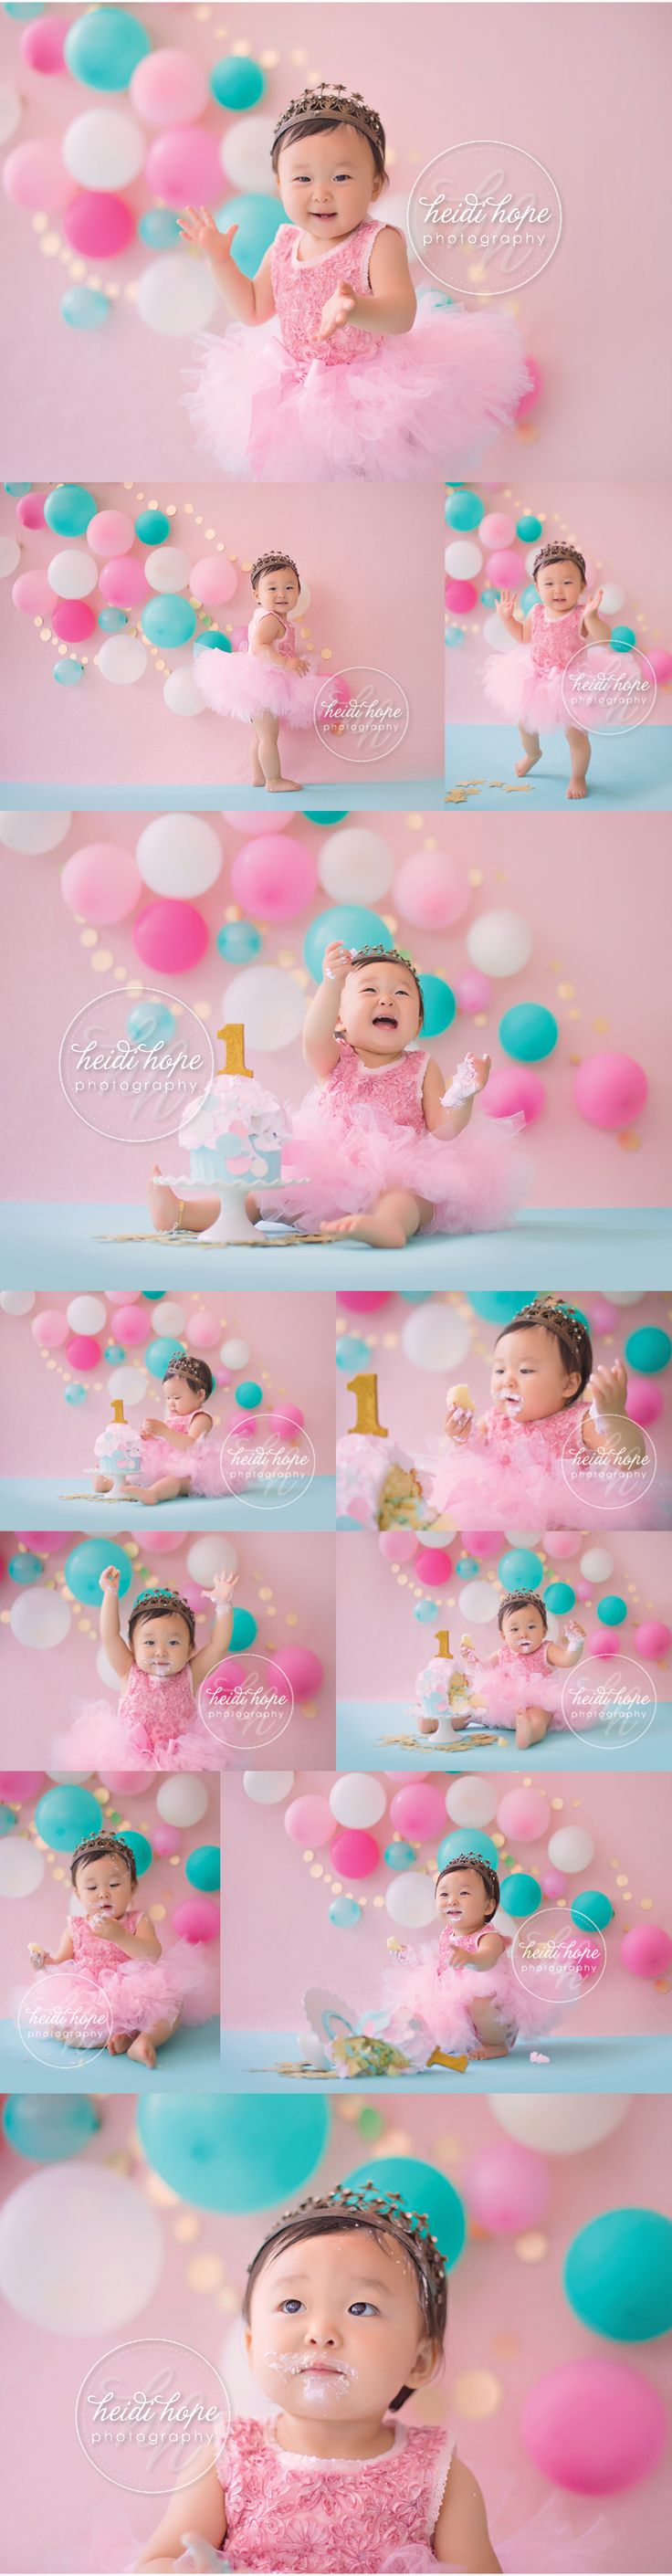 First Birthday Session - #rhodeisland #babyphotographer #heidihope